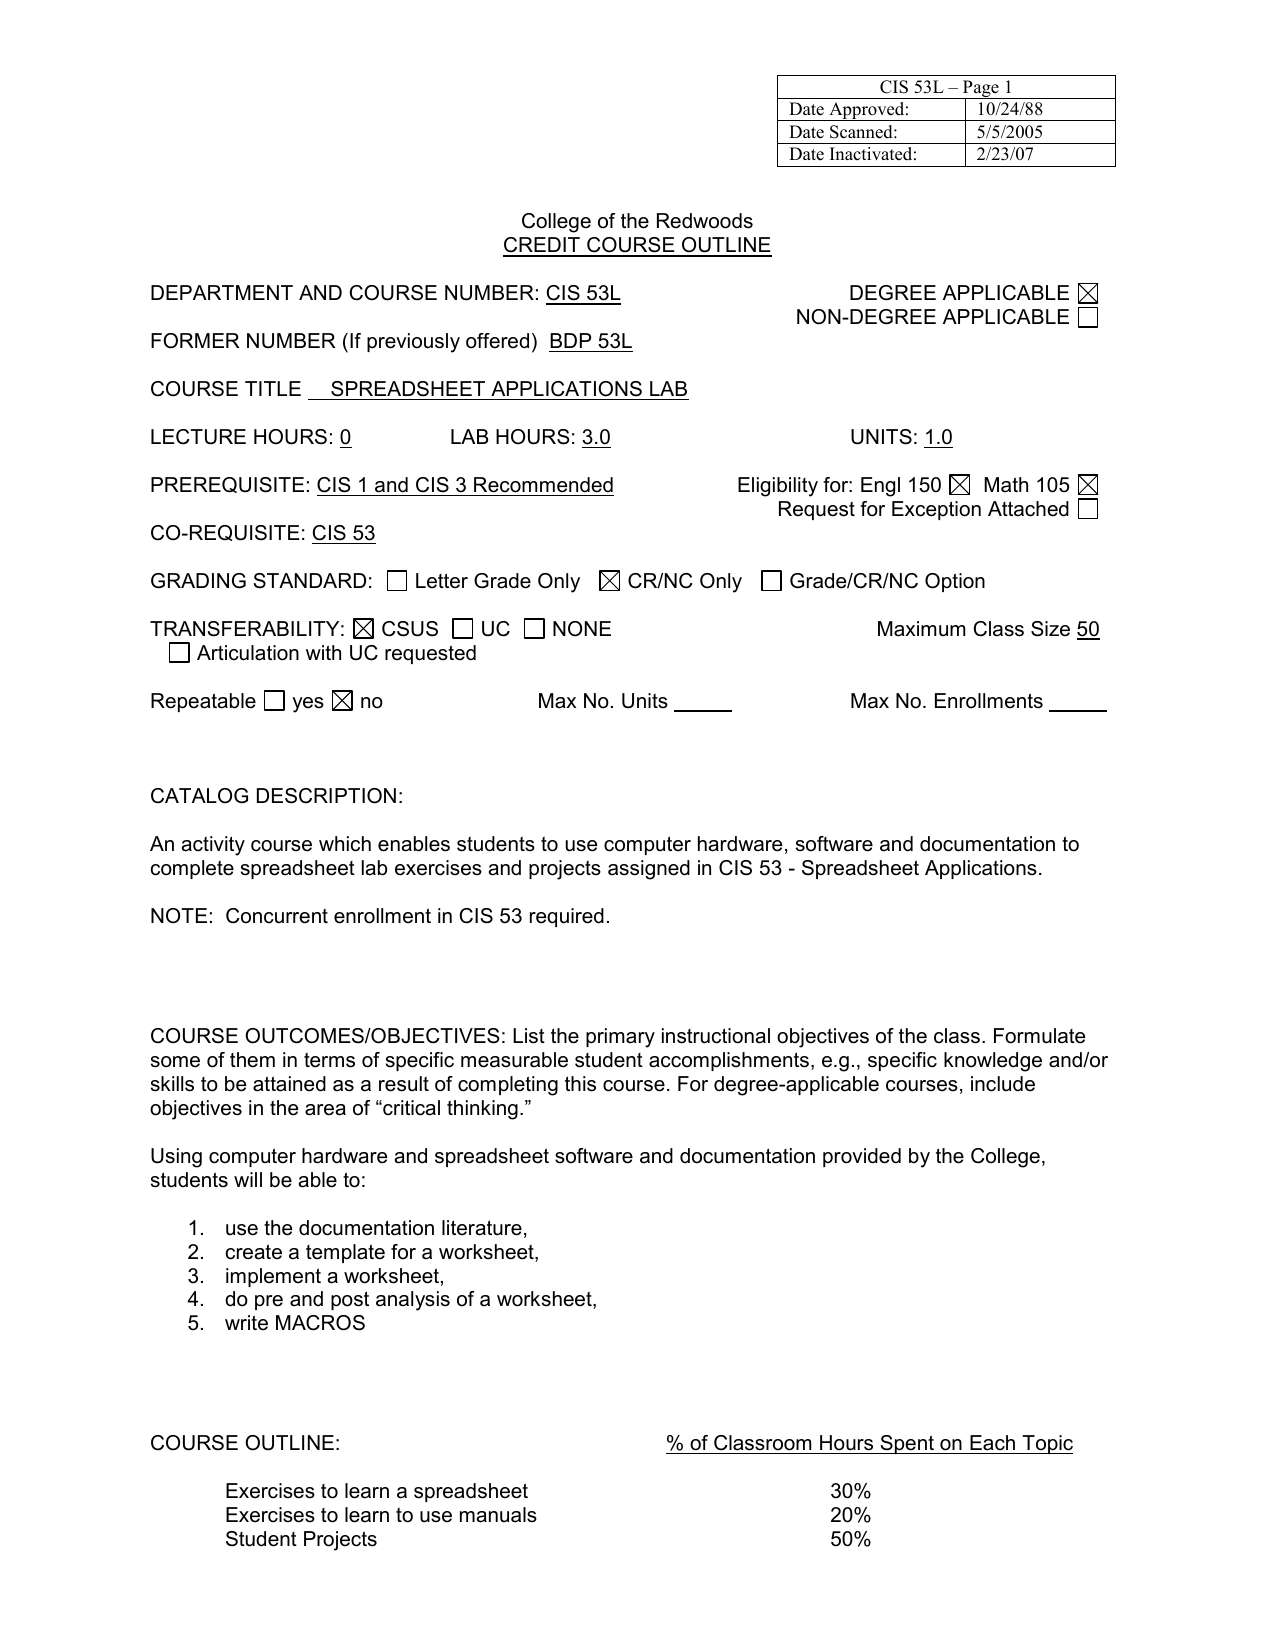 College of the Redwoods CREDIT COURSE OUTLINE